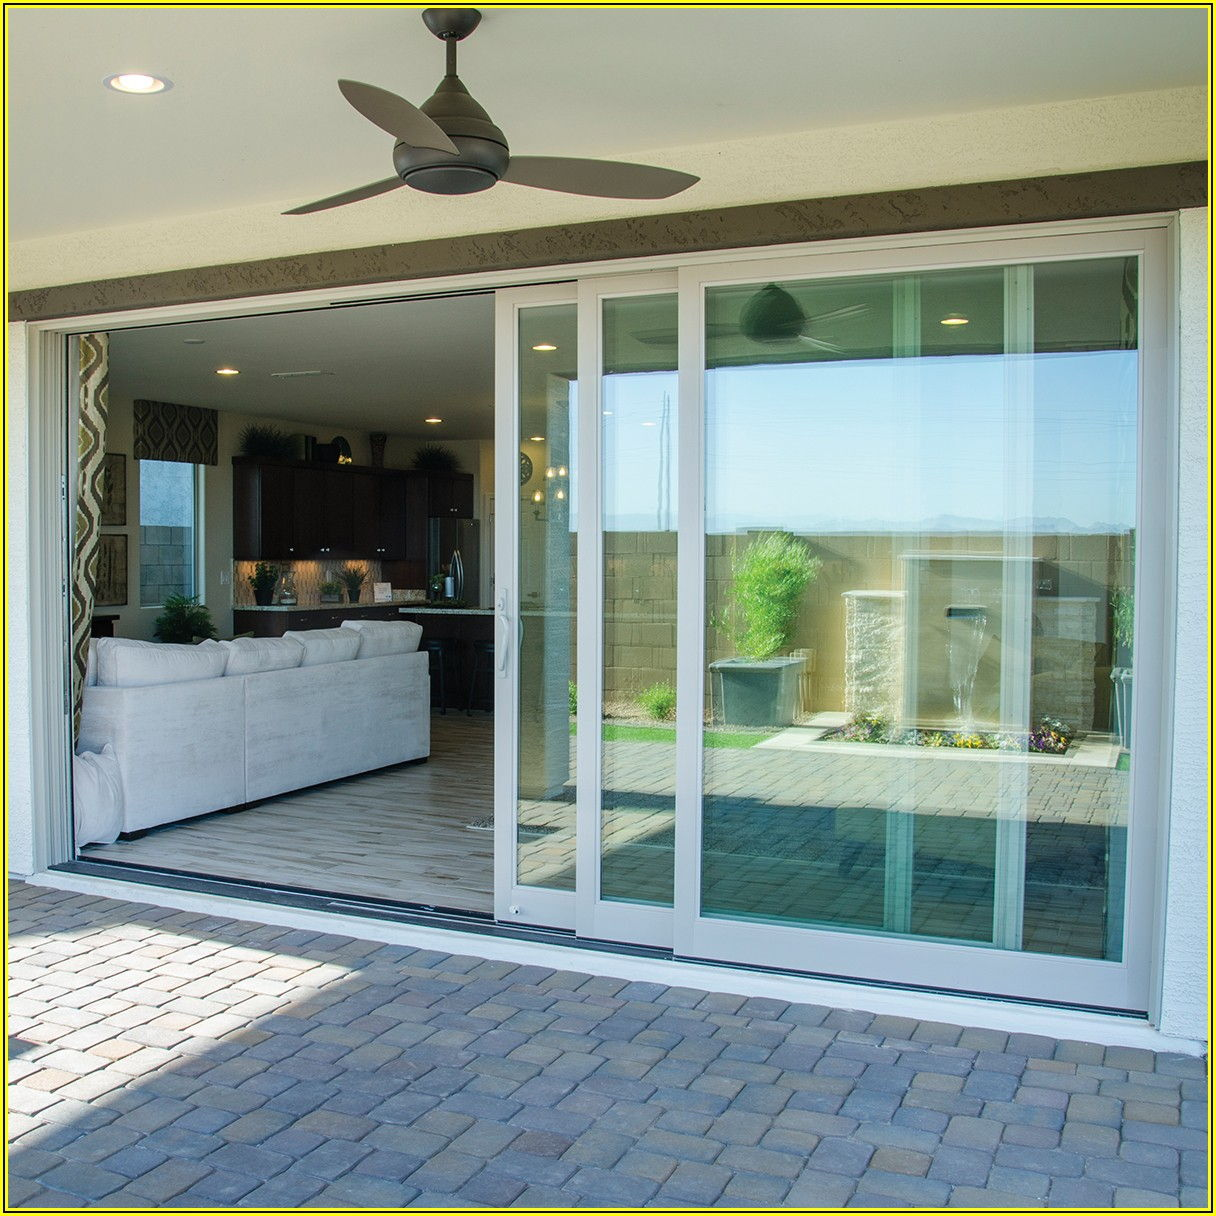 4 Panel Multi Slide Patio Door